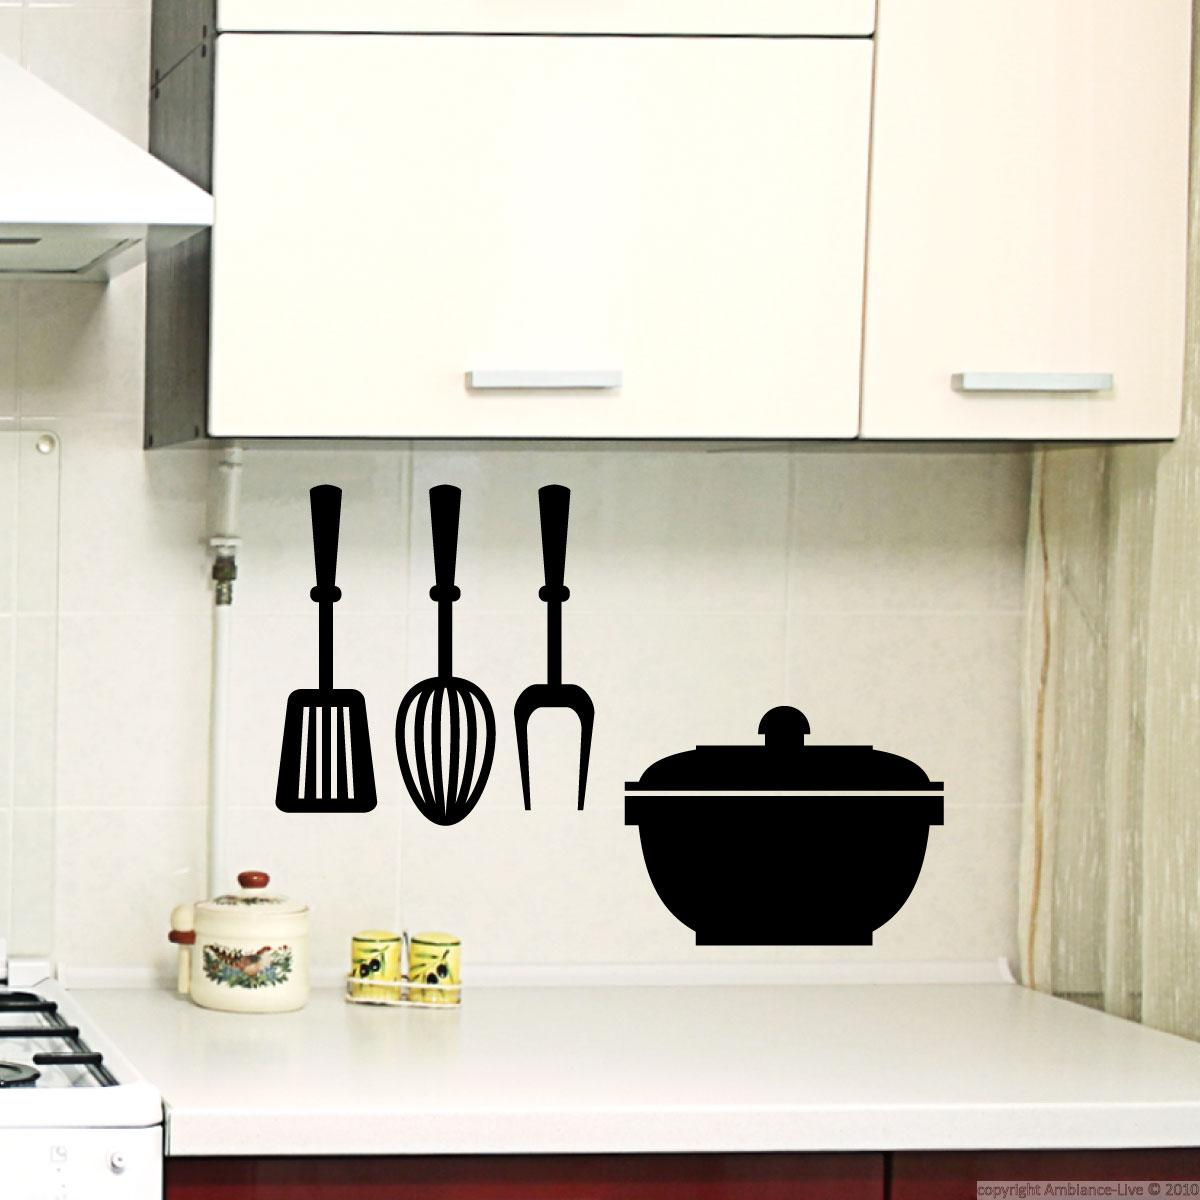 Wall Stickers Kitchen Design : Wall decals for the kitchen decal pot and utensils